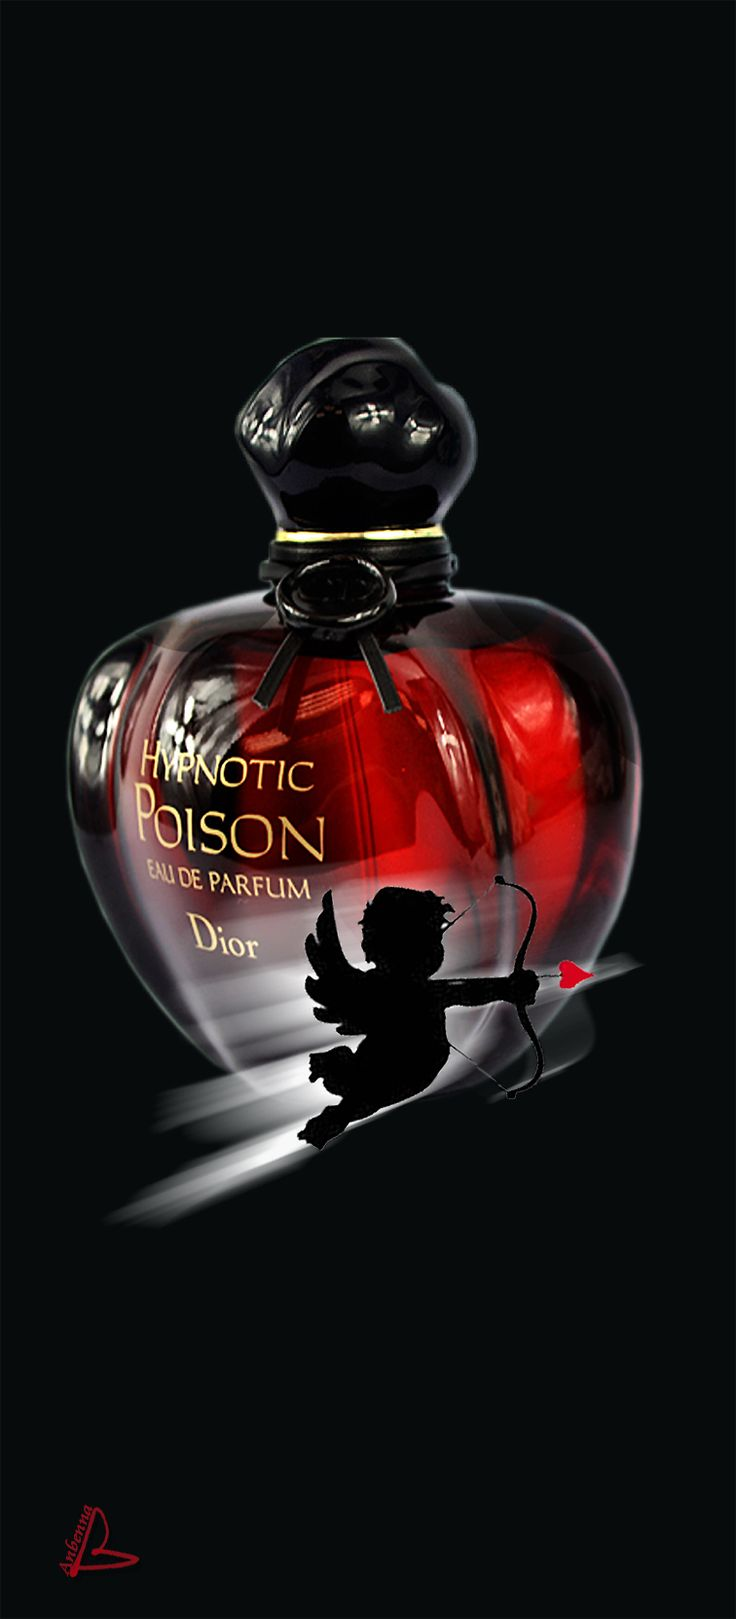 Hypnotic Poison by Dior, smells how warmth feels <3 Hints of almond, coconut and vanilla combine for a sensual harmony X :-)